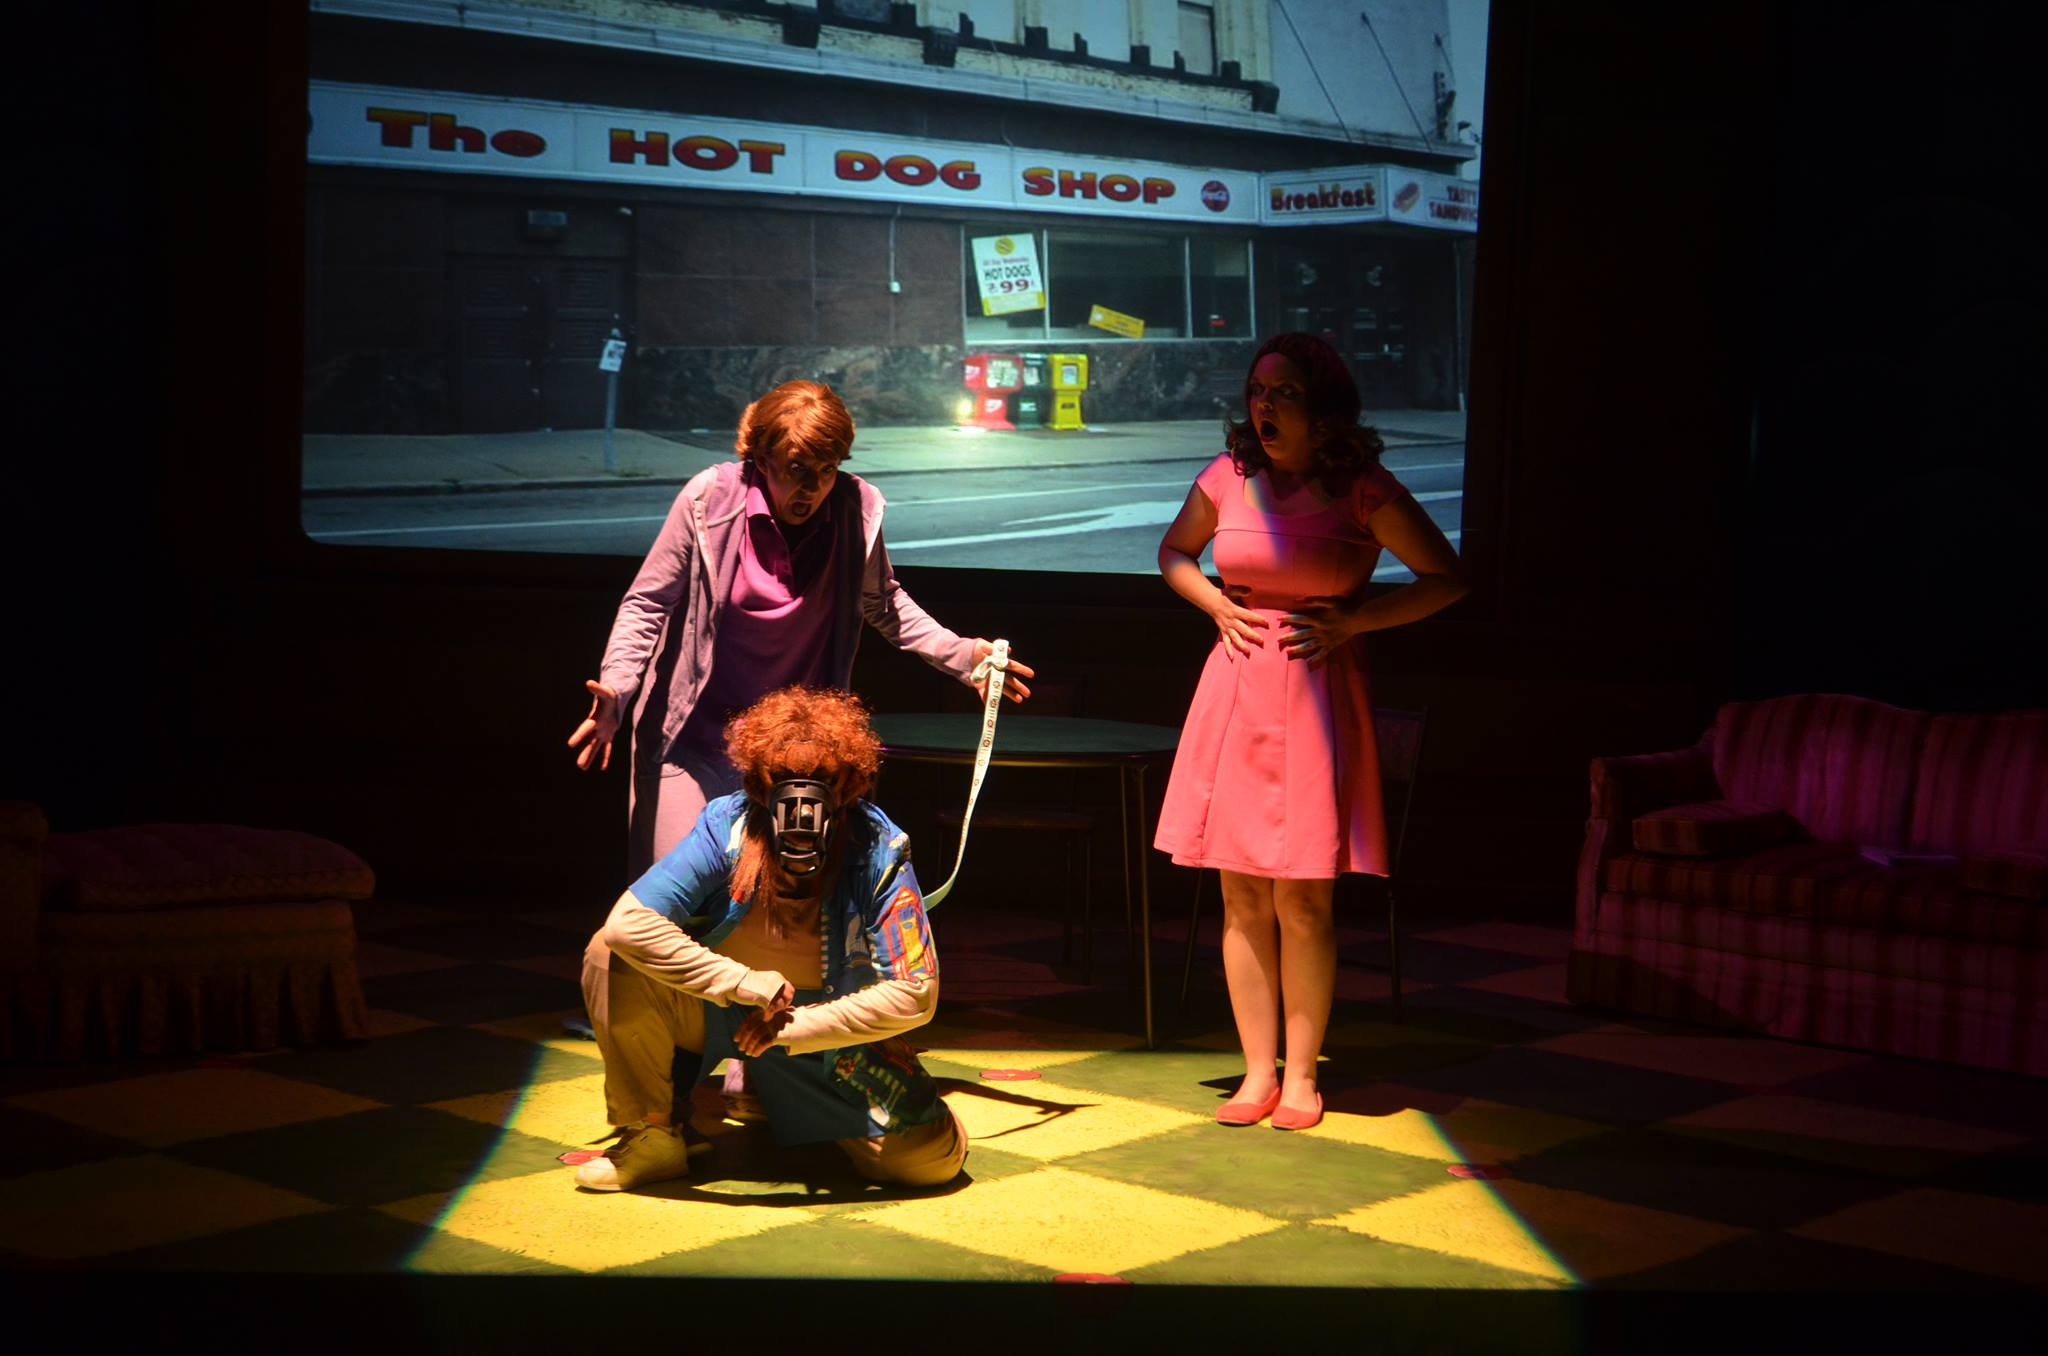 Hot Dog's  USA Premiere with Thinking Cap Theatre at Nova Southeastern University in Ft. Lauderdale, FL plays from 16 May - 1 June 2014